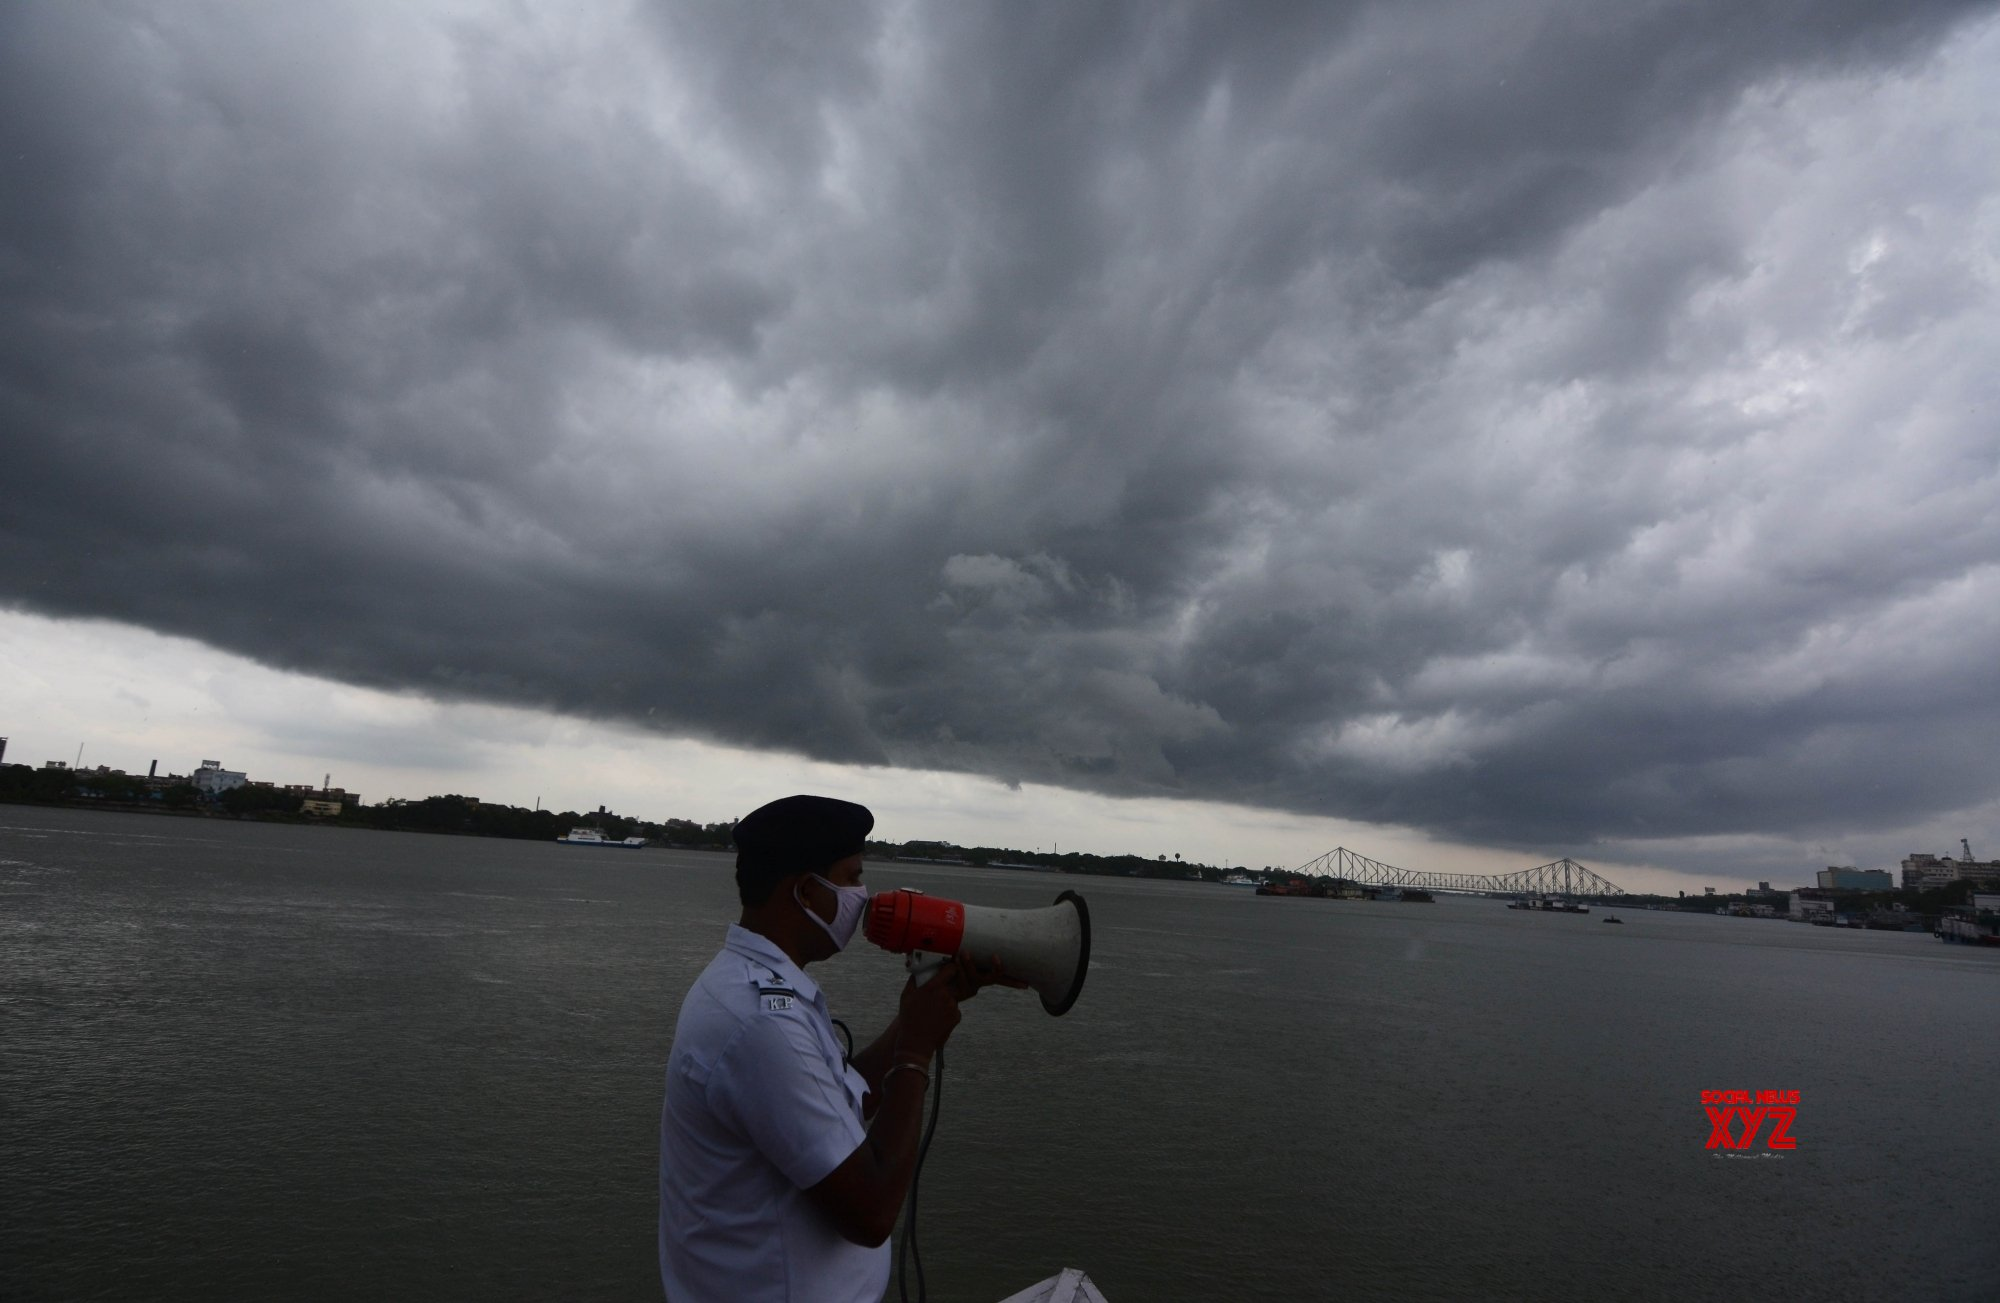 Super cyclone Amphan to hit coastal areas from afternoon: IMD